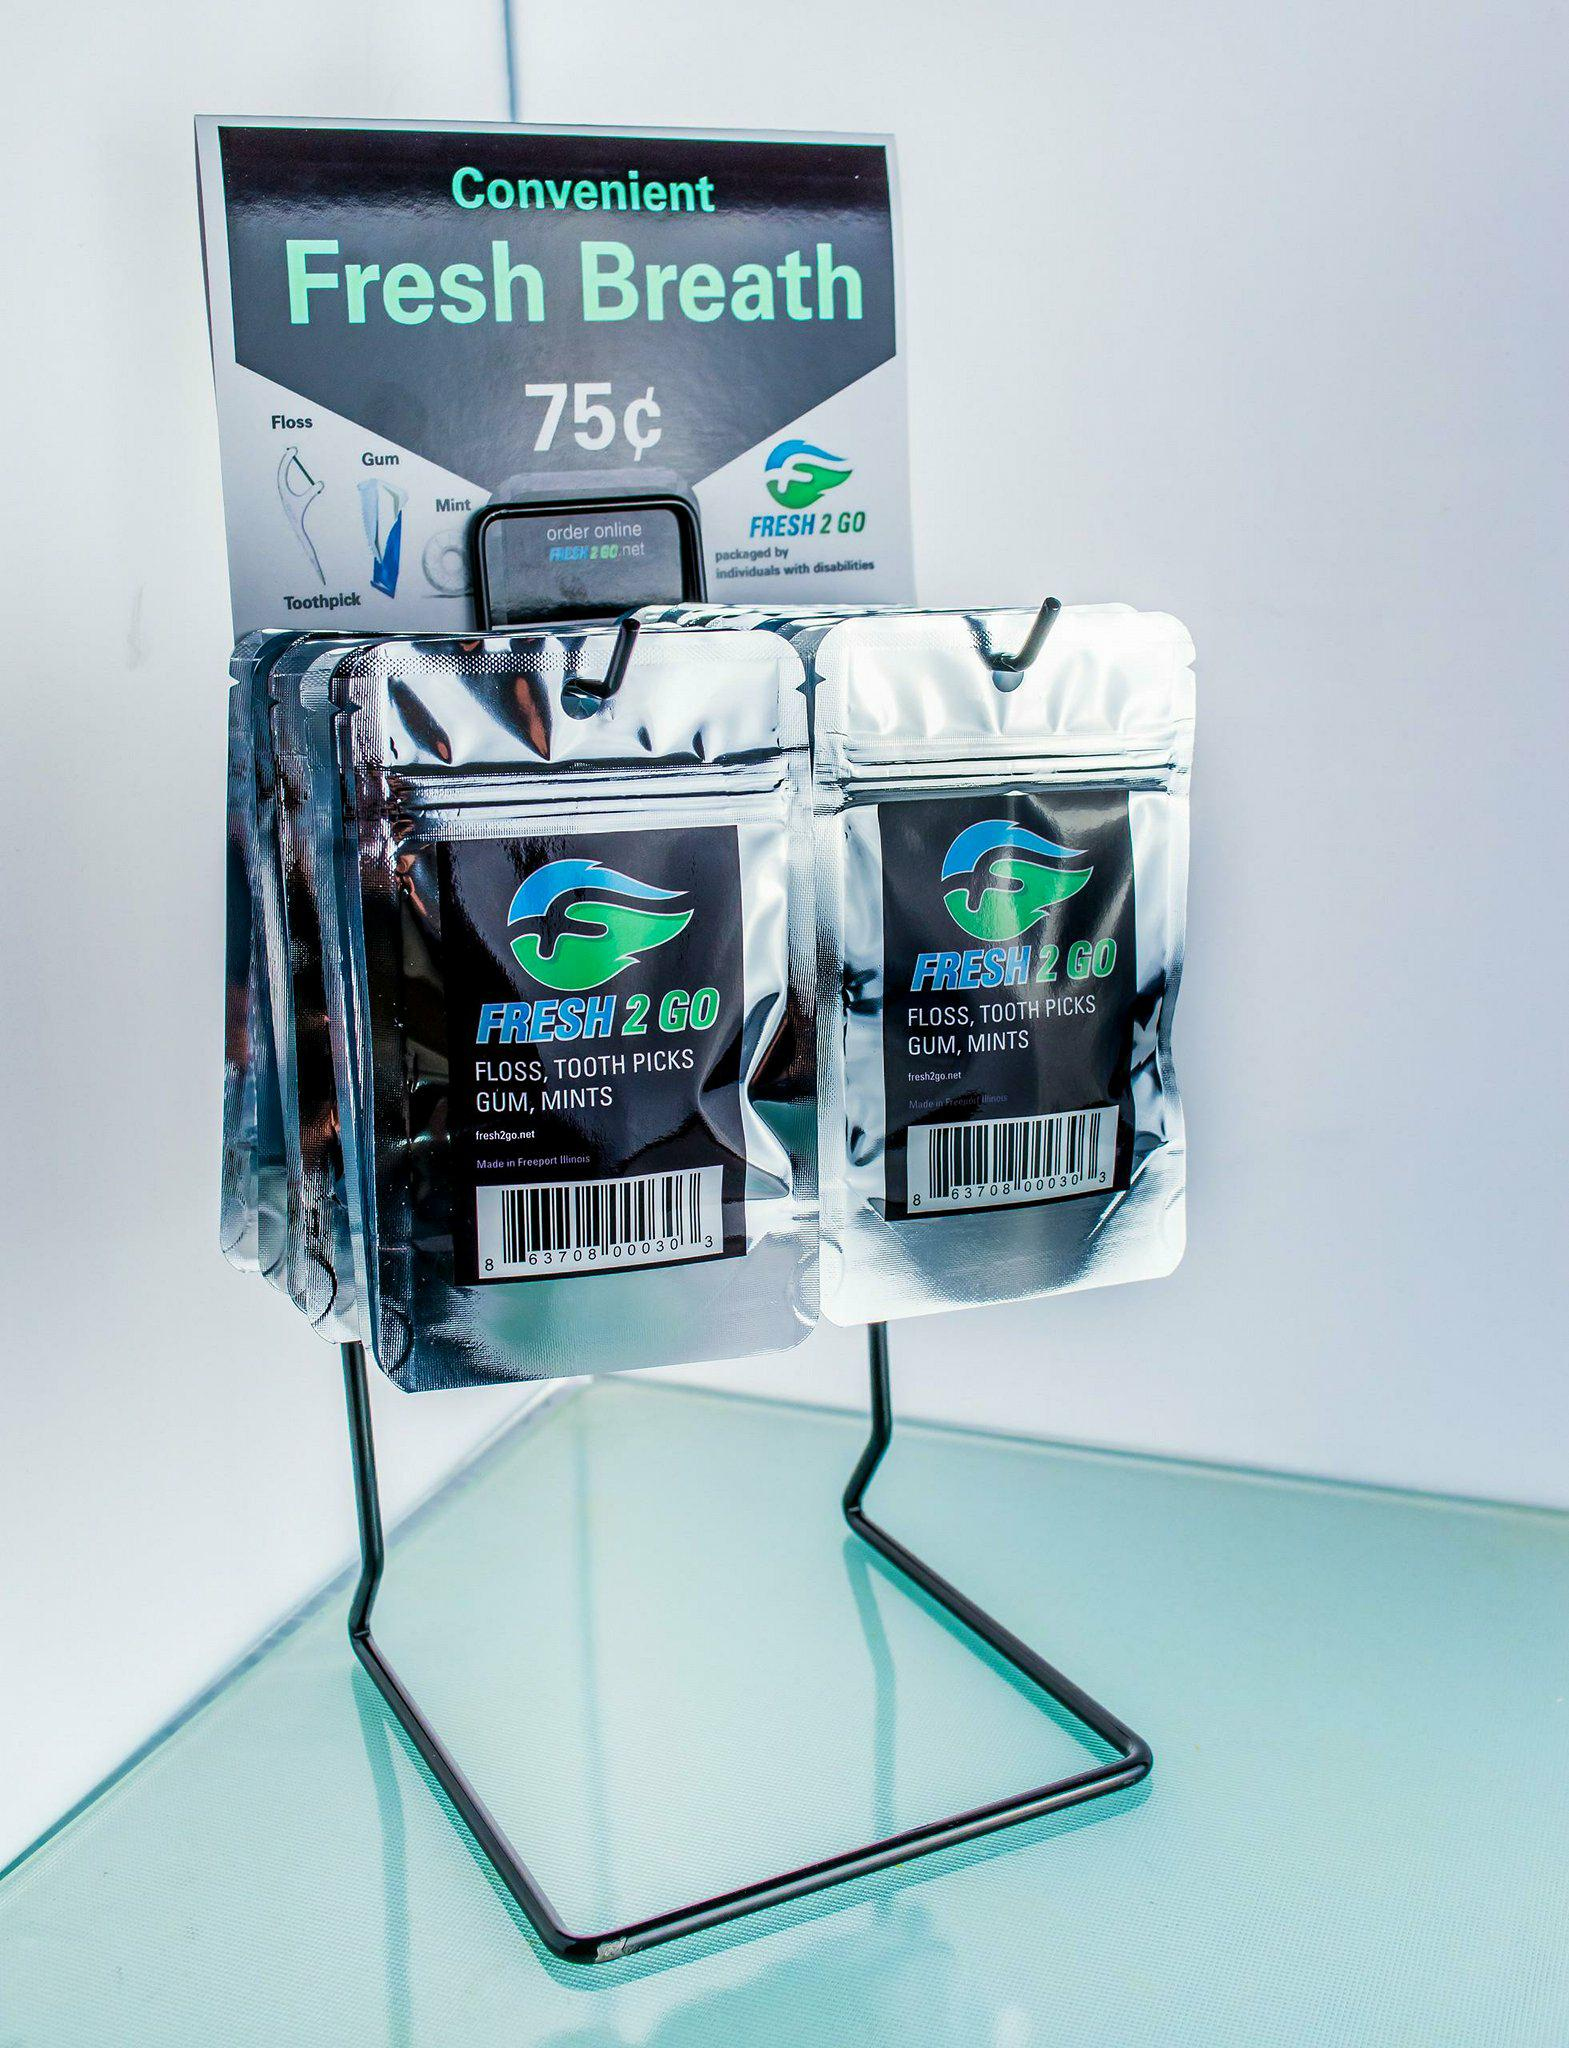 In point-of-sales displays, Fresh2Go's design allows you to display whatever you find most effective, whether it's our logo, your custom label...